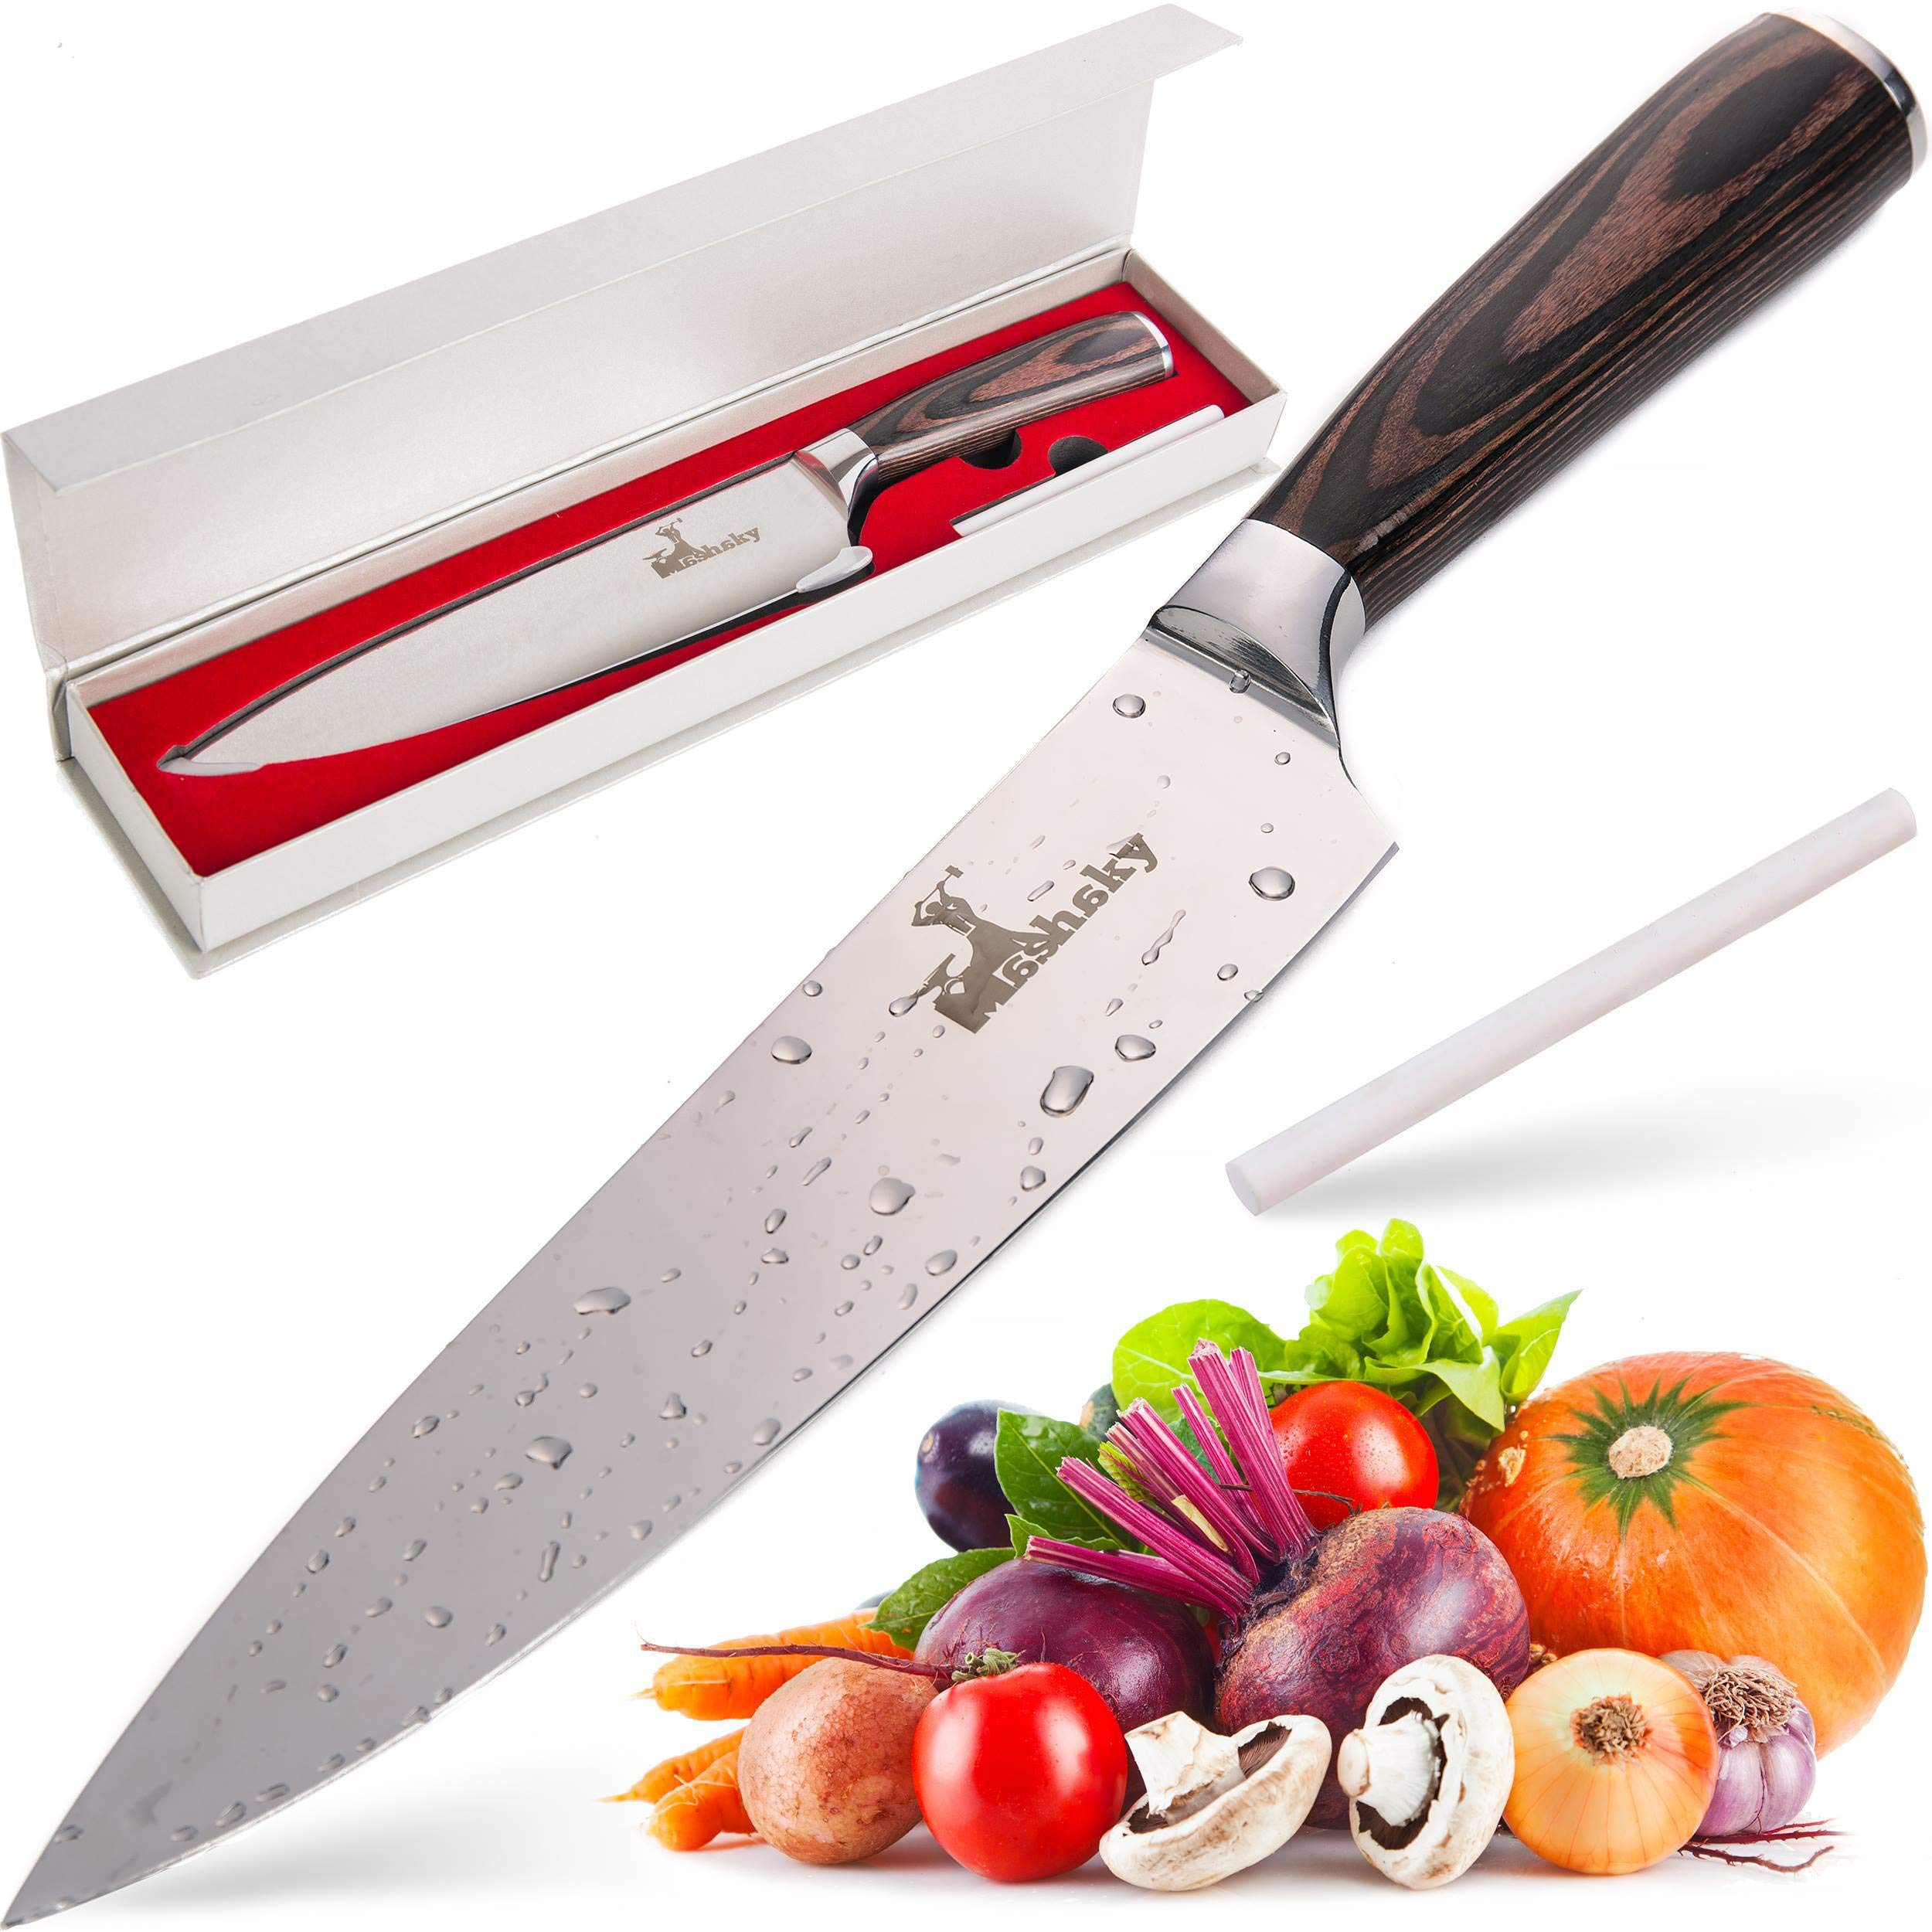 Professional 8 Inch Chef Knife | Premium High Carbon Kitchen Knife | Stainless Steel Cooking Knife With Ergonomic Pakka Wood Handle + Ceramic Honing Rod by Mashaky